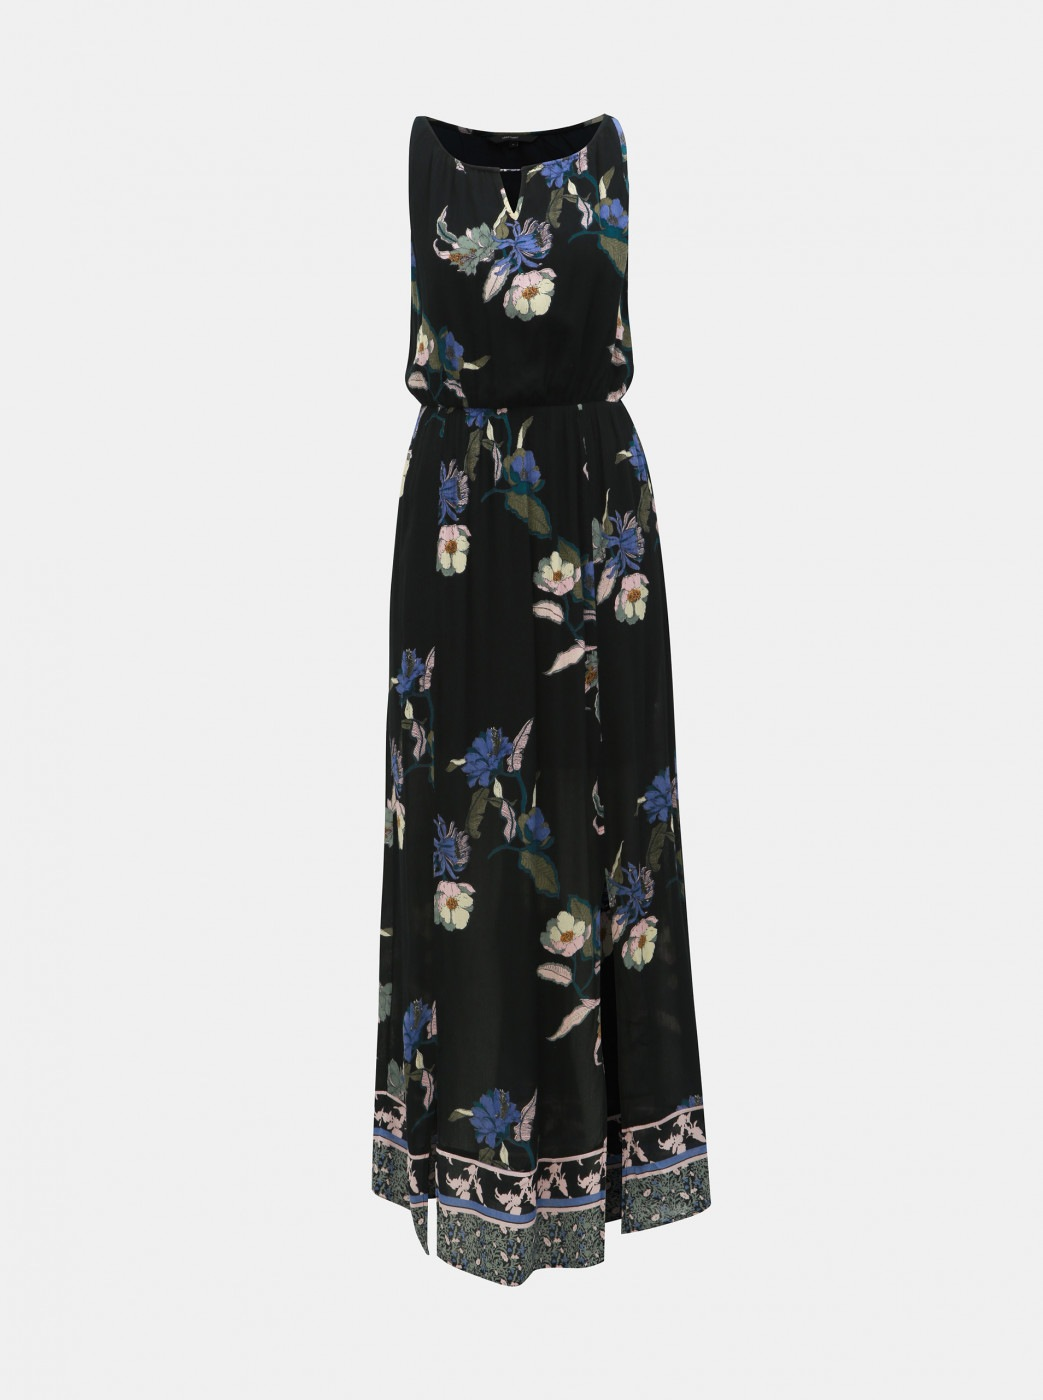 Black floral maxi dress with opening in vero moda olina décolleté